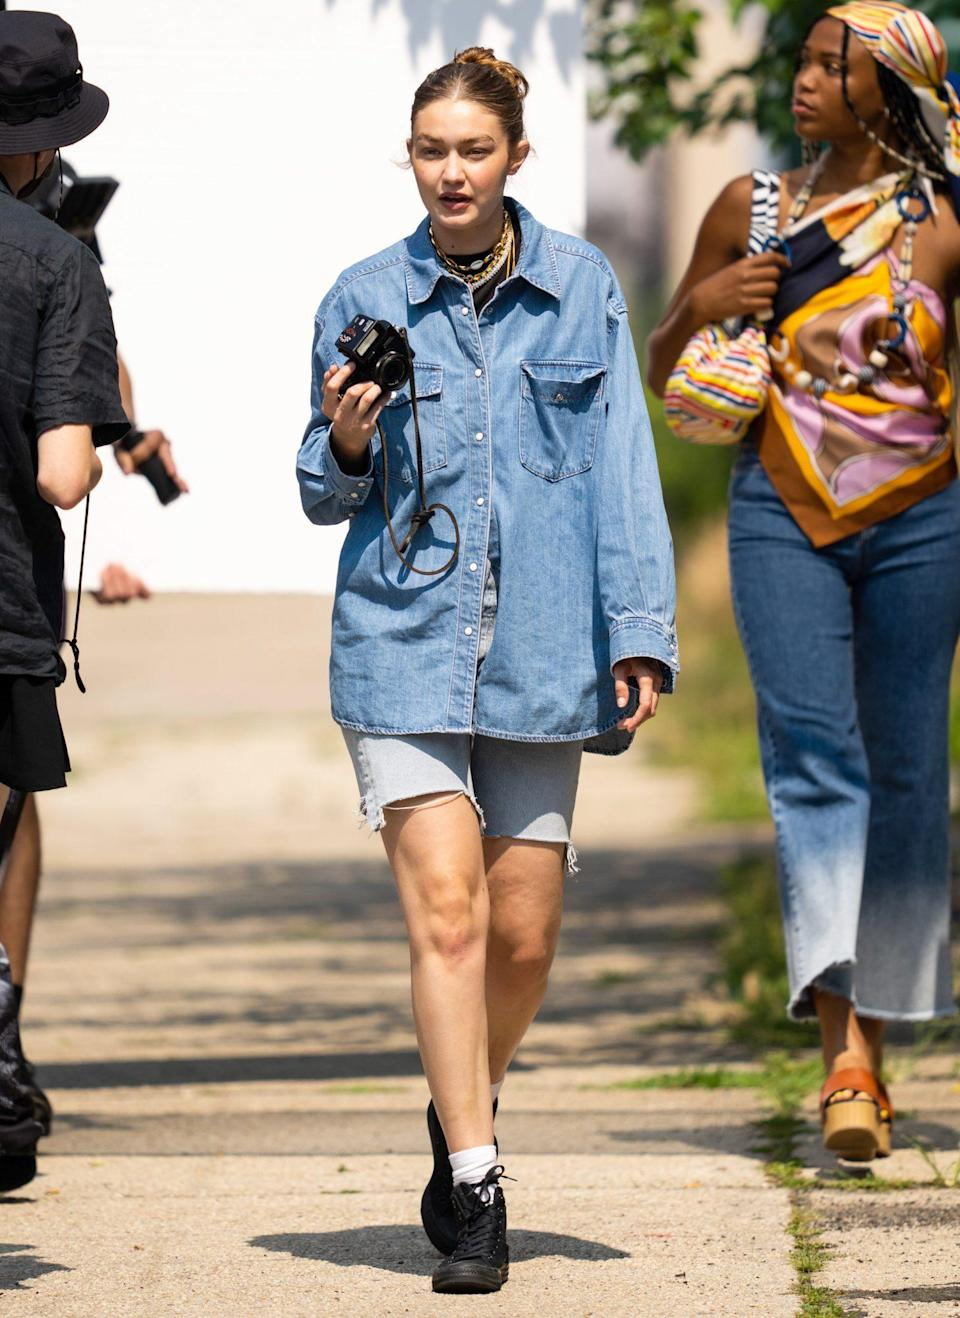 <p>Gigi Hadid mans the camera during a photoshoot with friends Alana O'Herlihy and Gabriella Karefe-Johnson in Brooklyn, New York on July 27. </p>